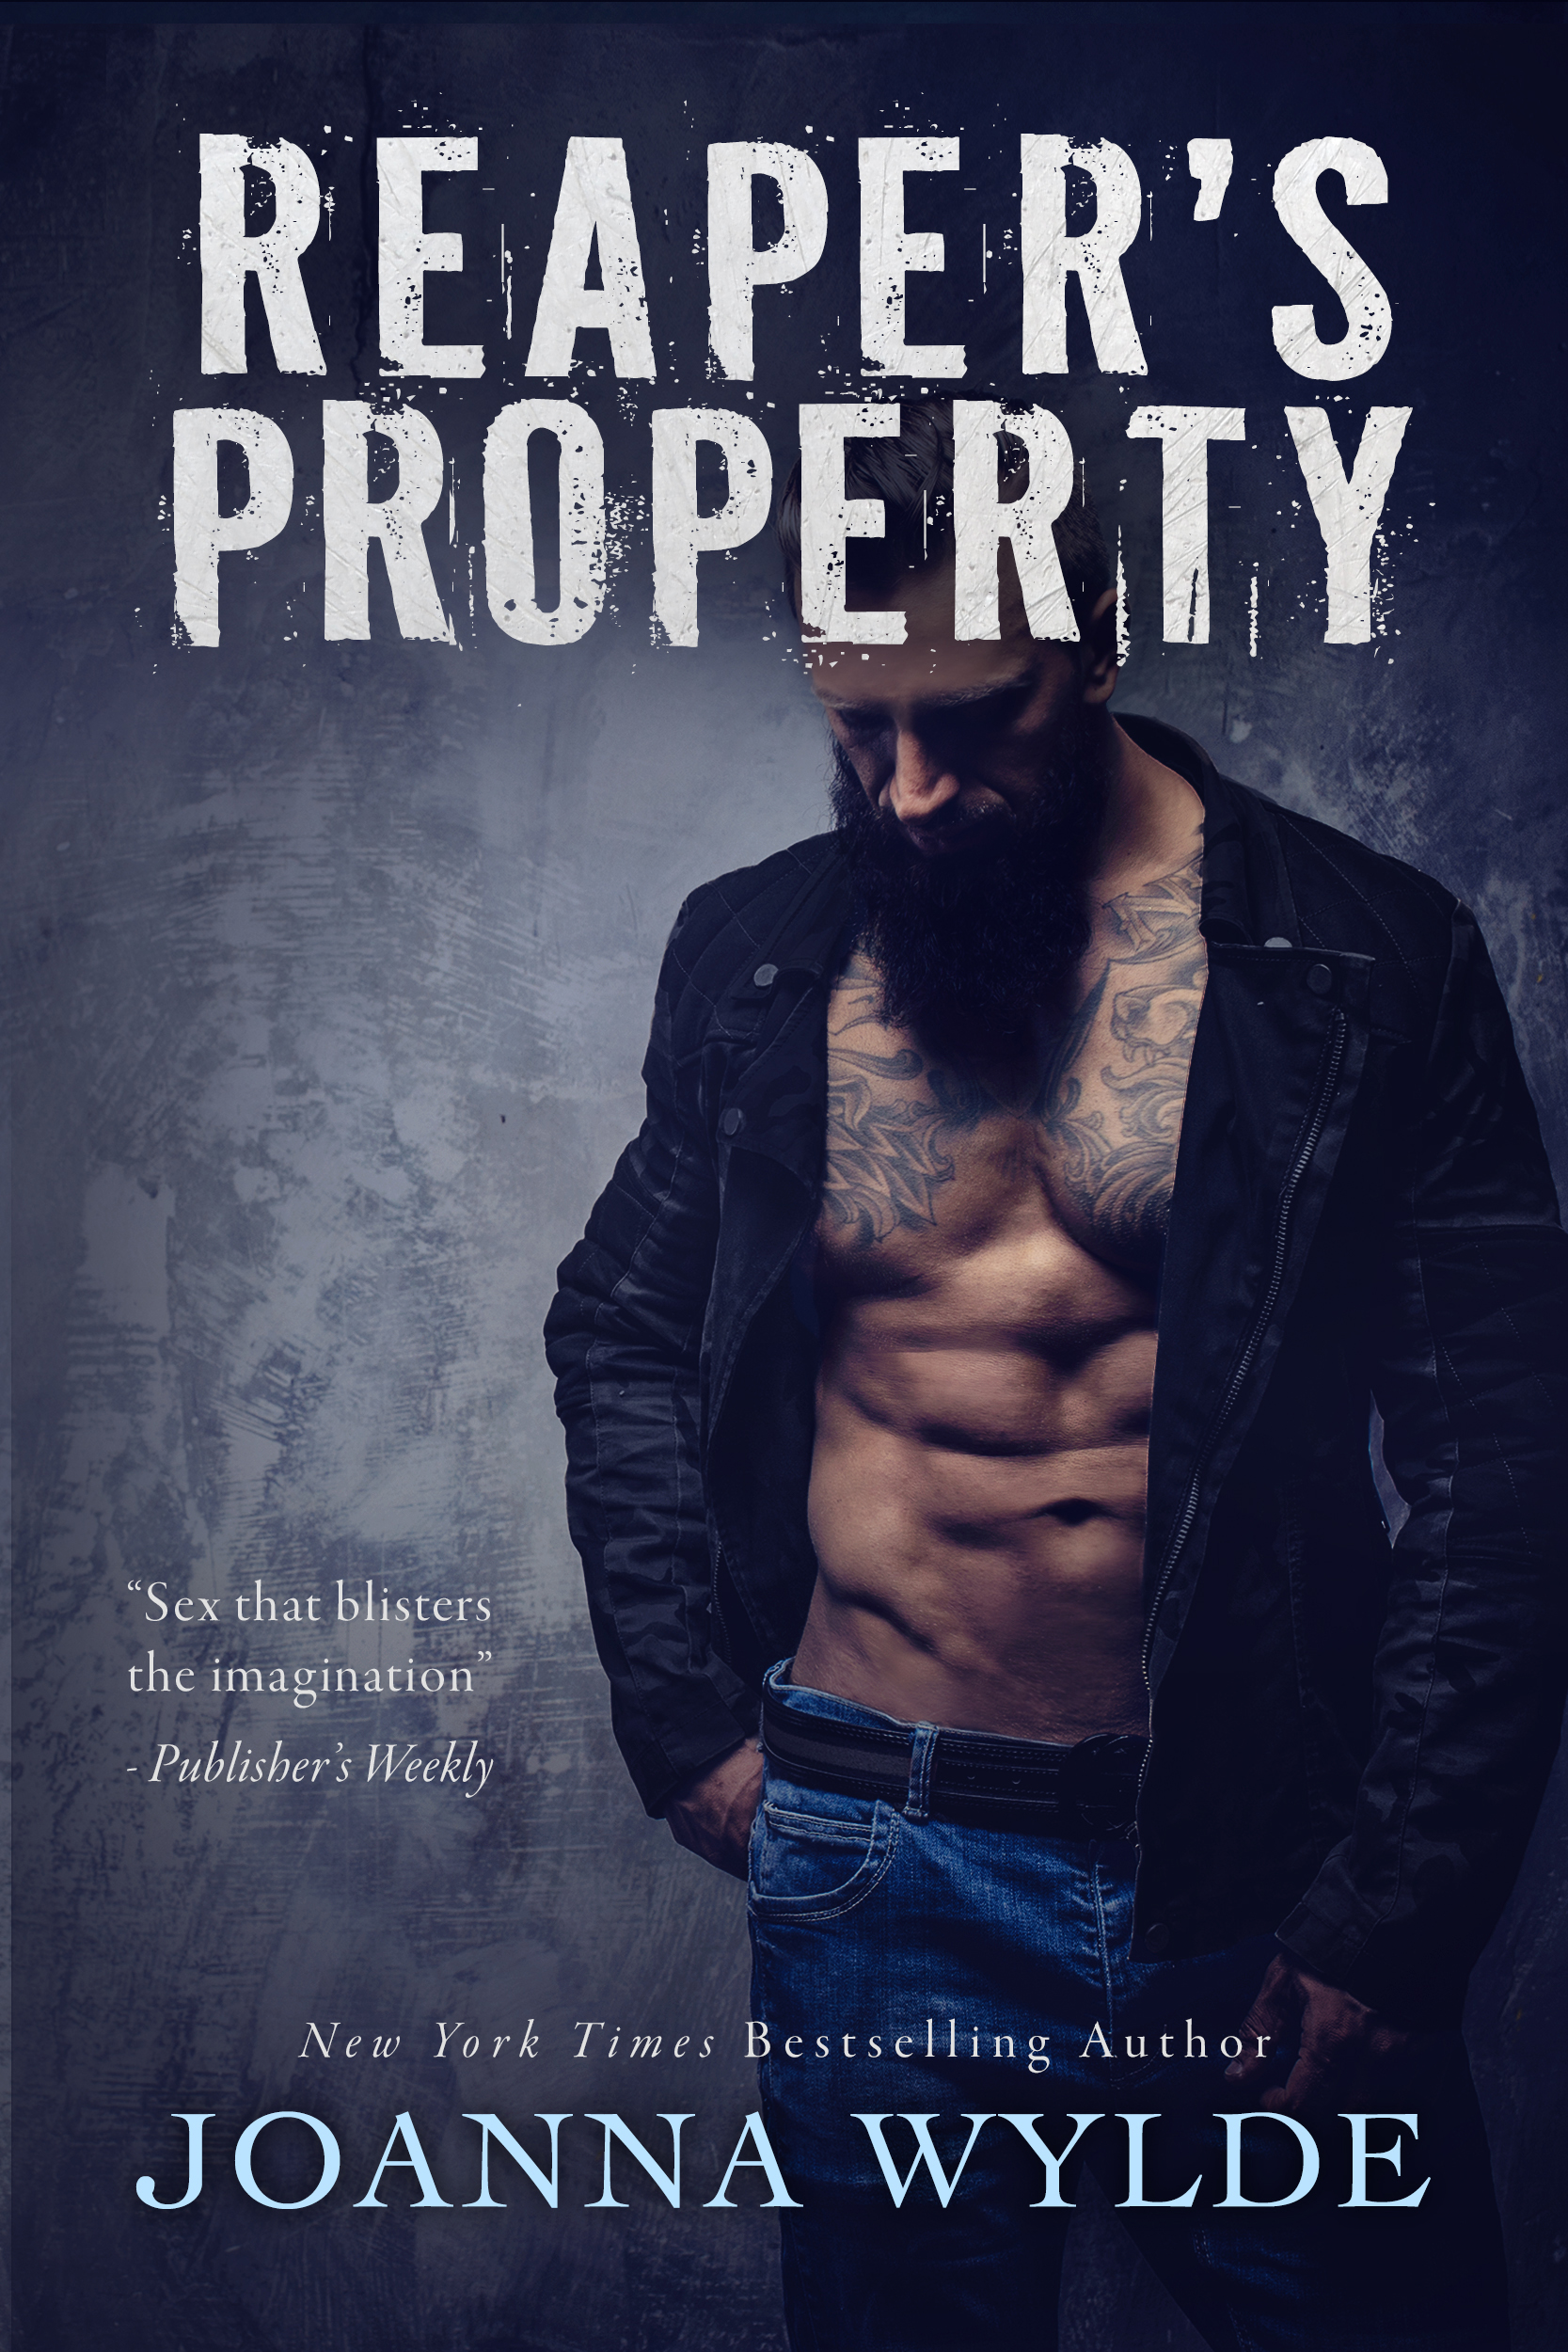 REAPER'S PROPERTY Cover – Joanna Wylde